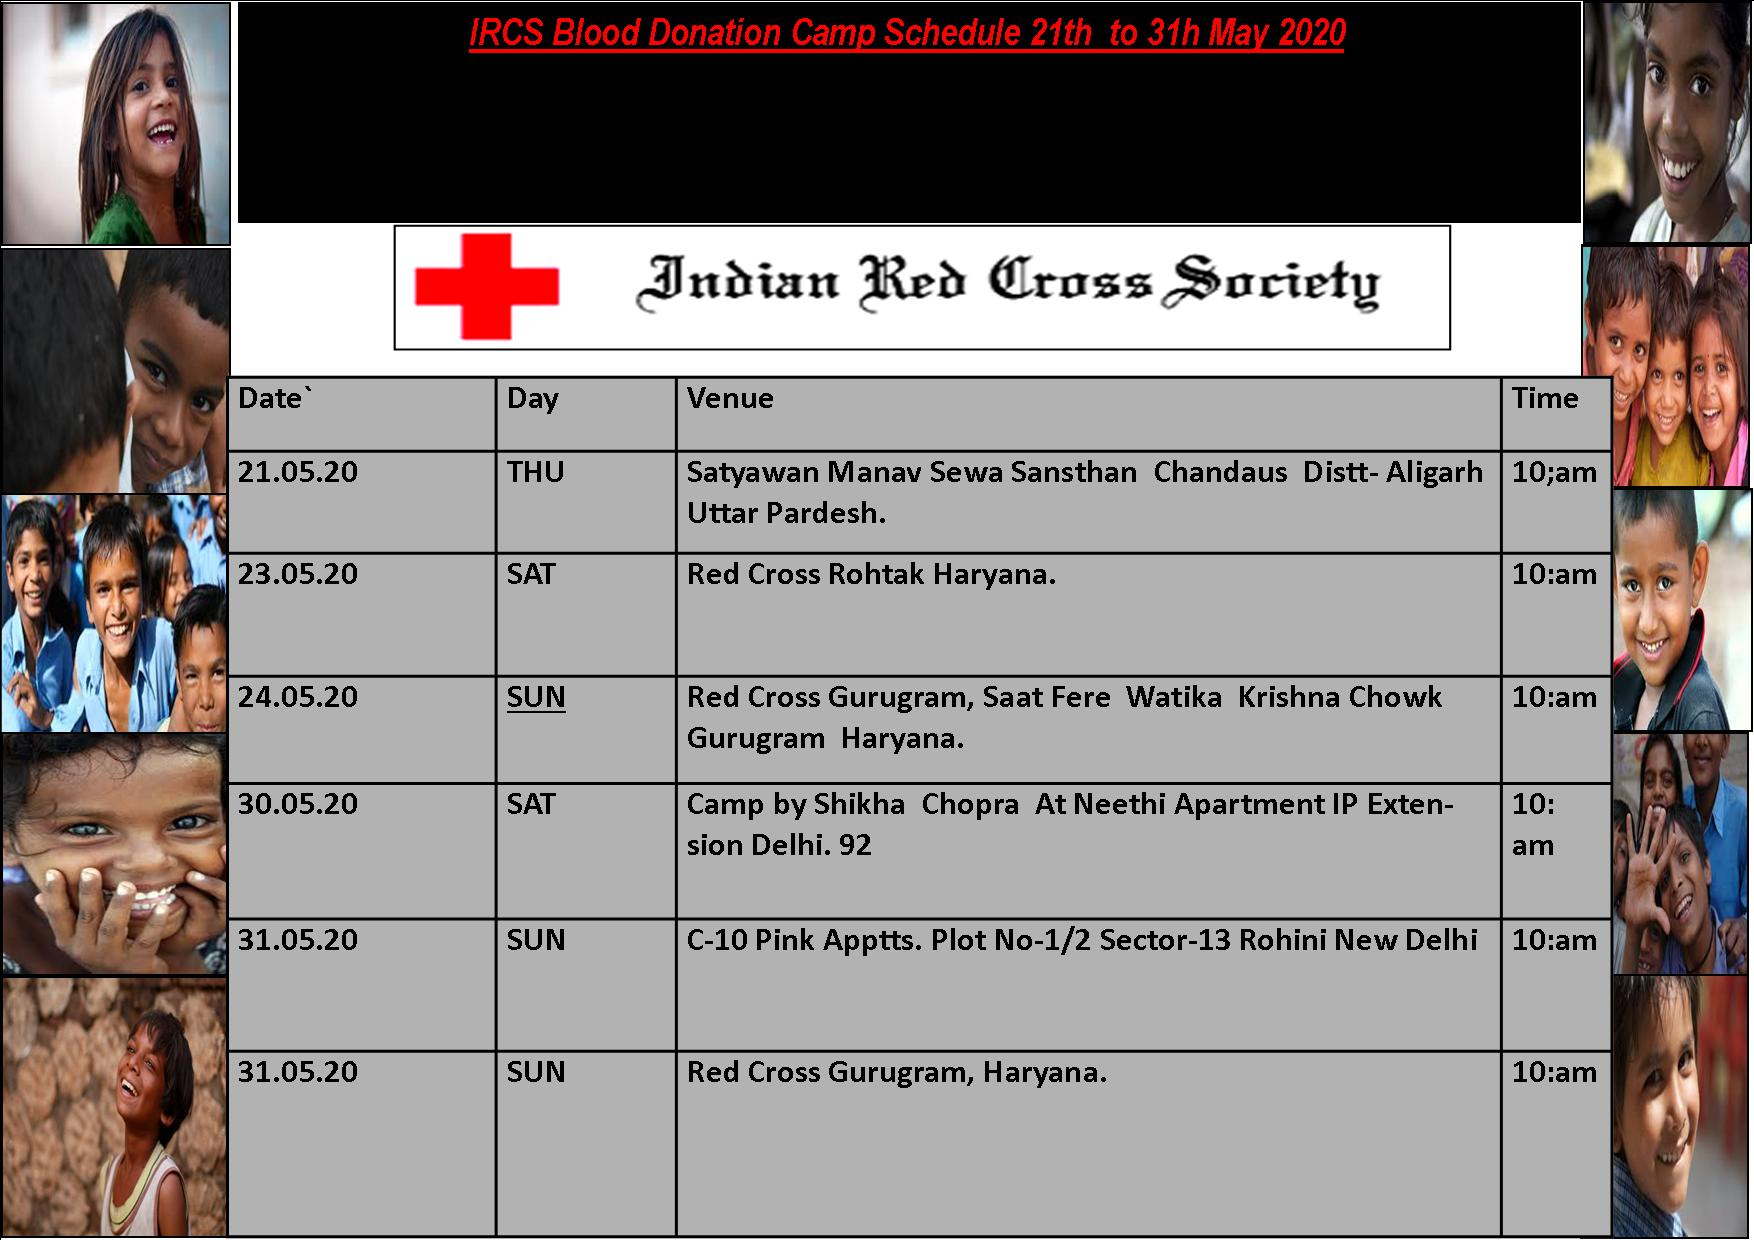 Blood Donation Camp Schedule - 21-31 May, 2020